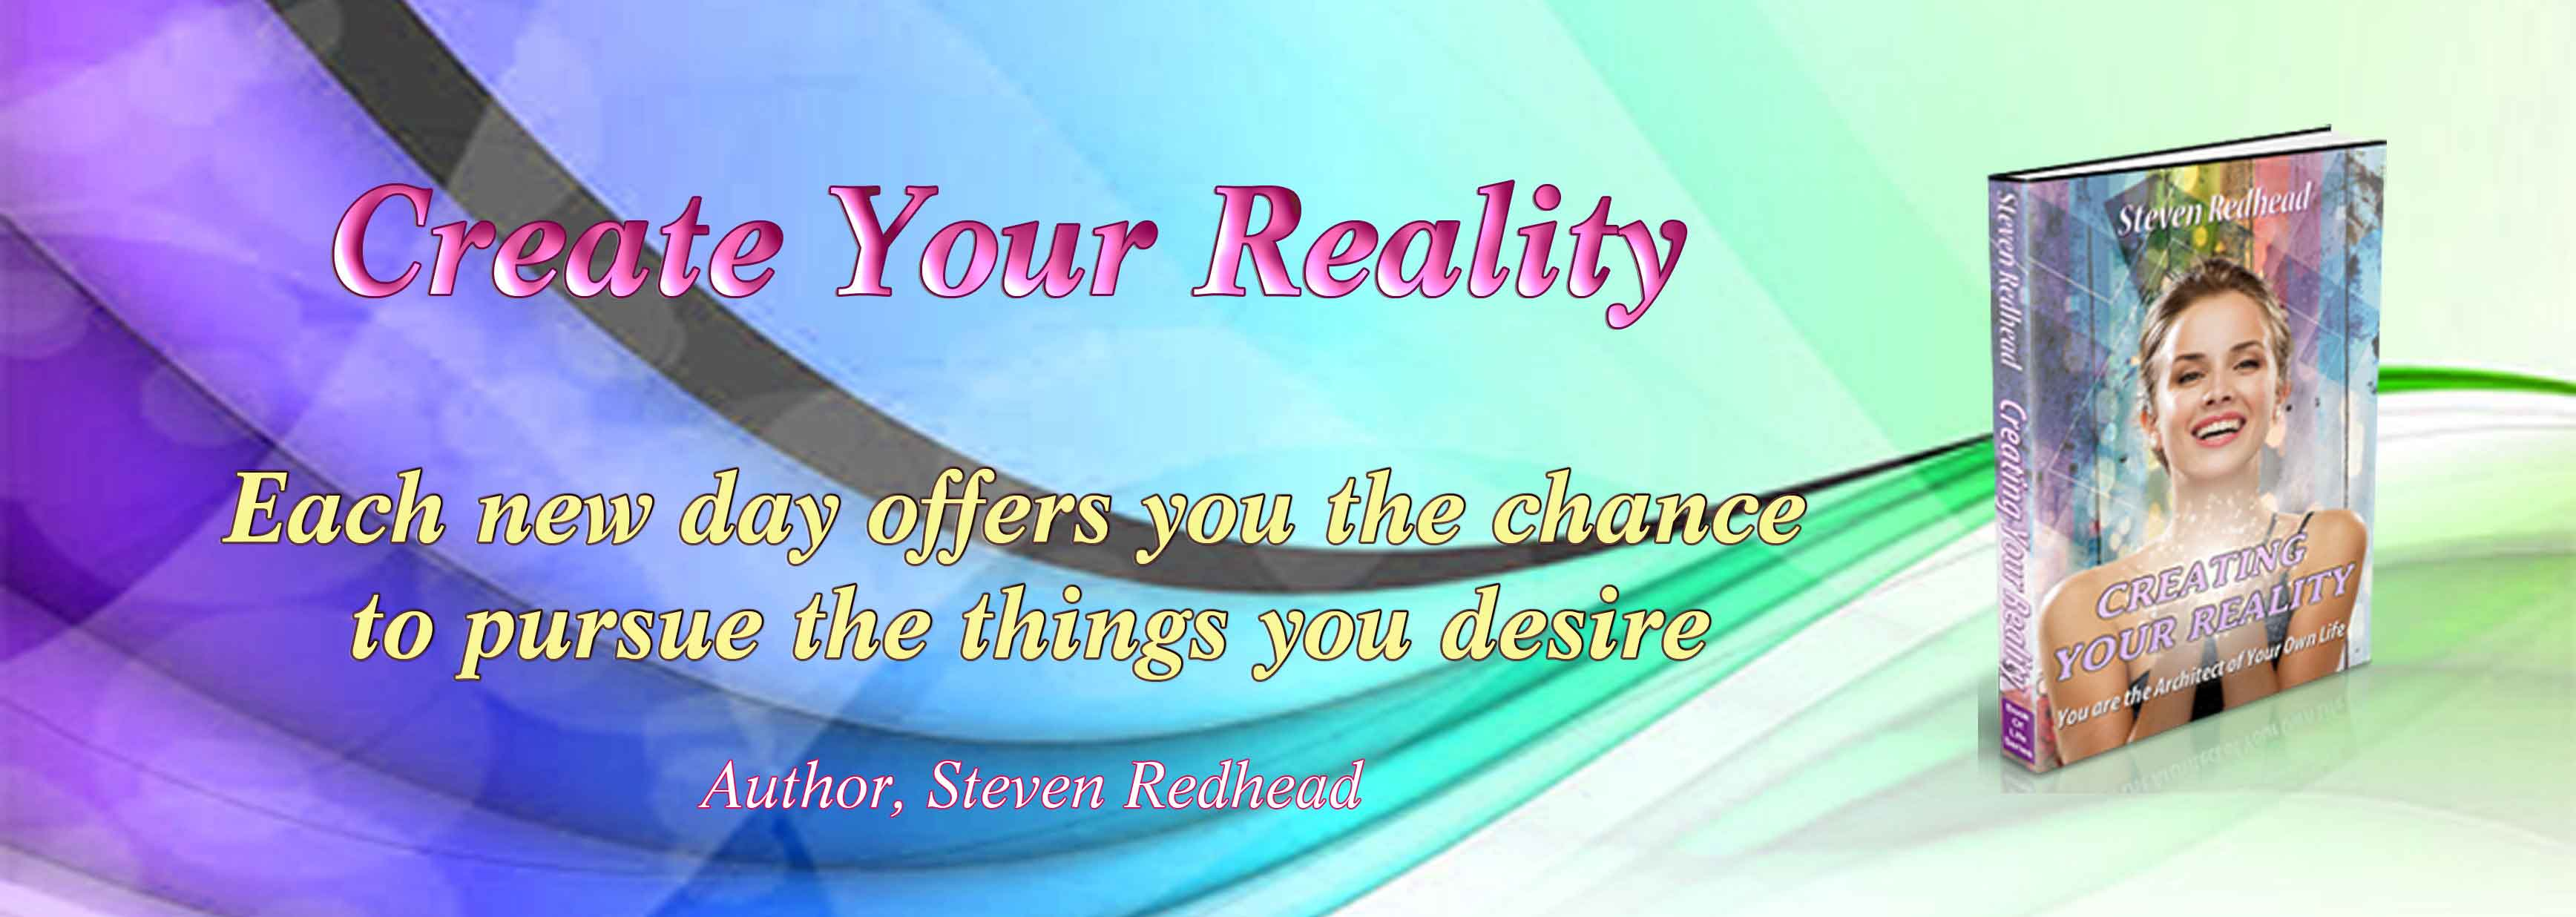 Creating Your Reality Book